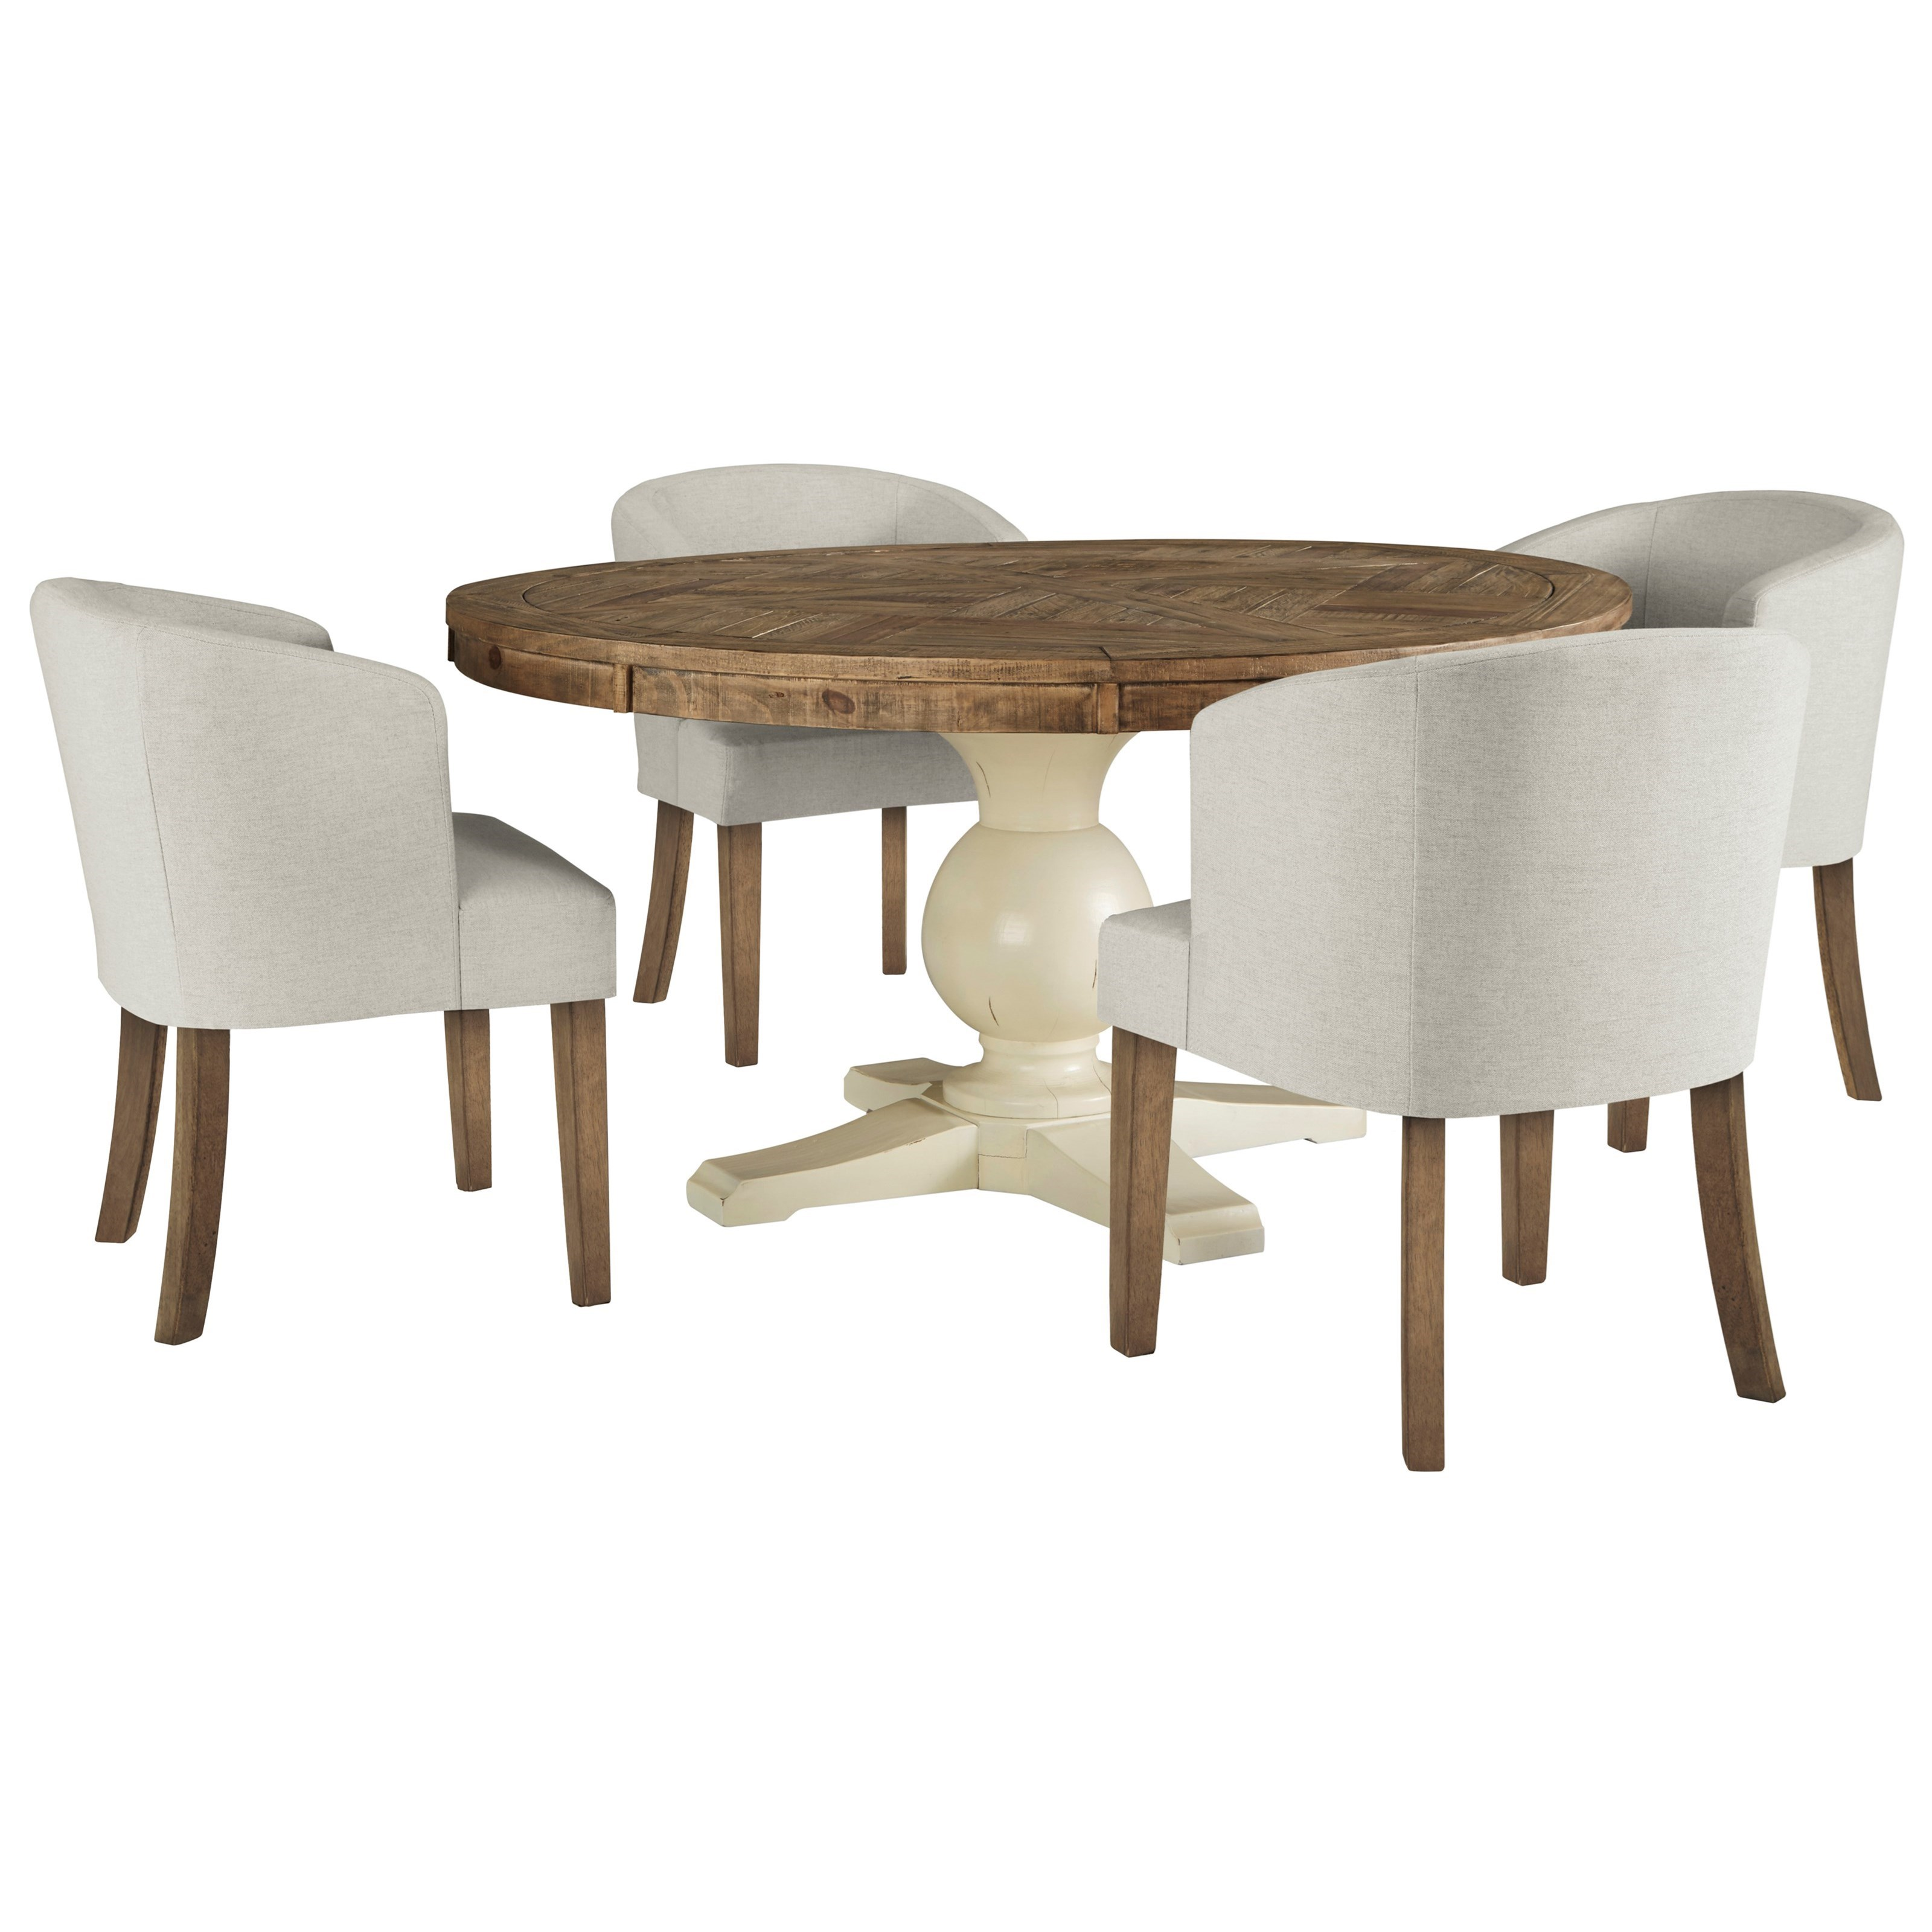 Grindleburg 5 Piece Round Table and Chair Set by Signature Design by Ashley at Lapeer Furniture & Mattress Center